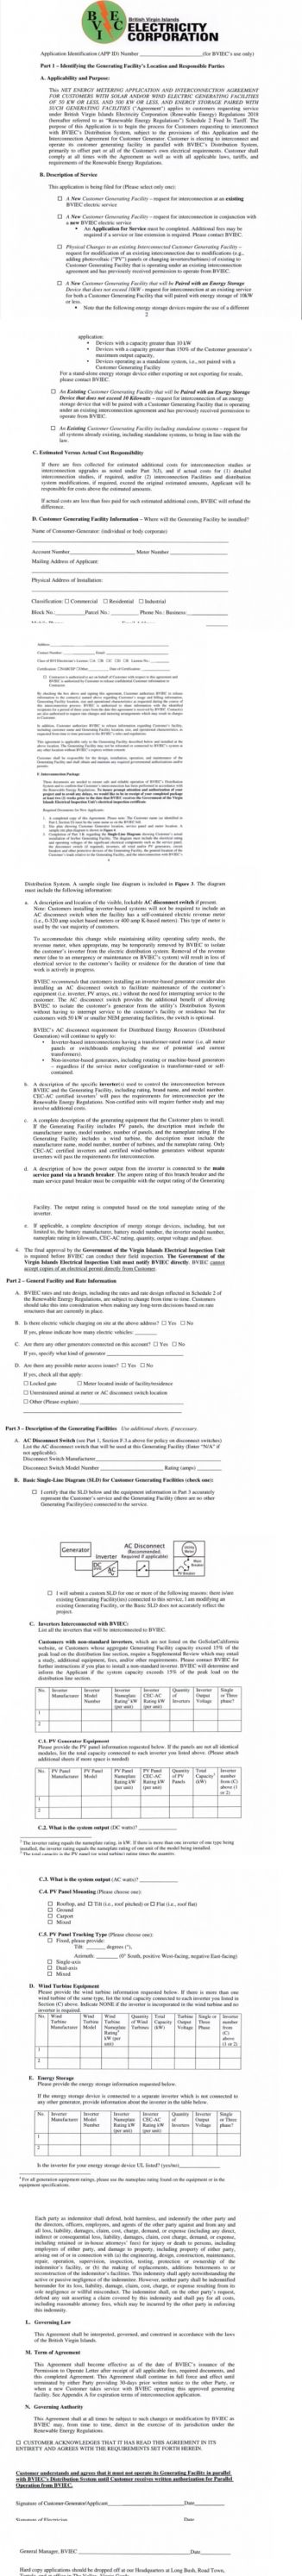 (SAMPLE) Applications can be downloaded from the BVIEC's website, bvielectricity.com or uplift a hard copy from branches located at Long Bush, Road Town or Virgin Gorda. Photo: Provided